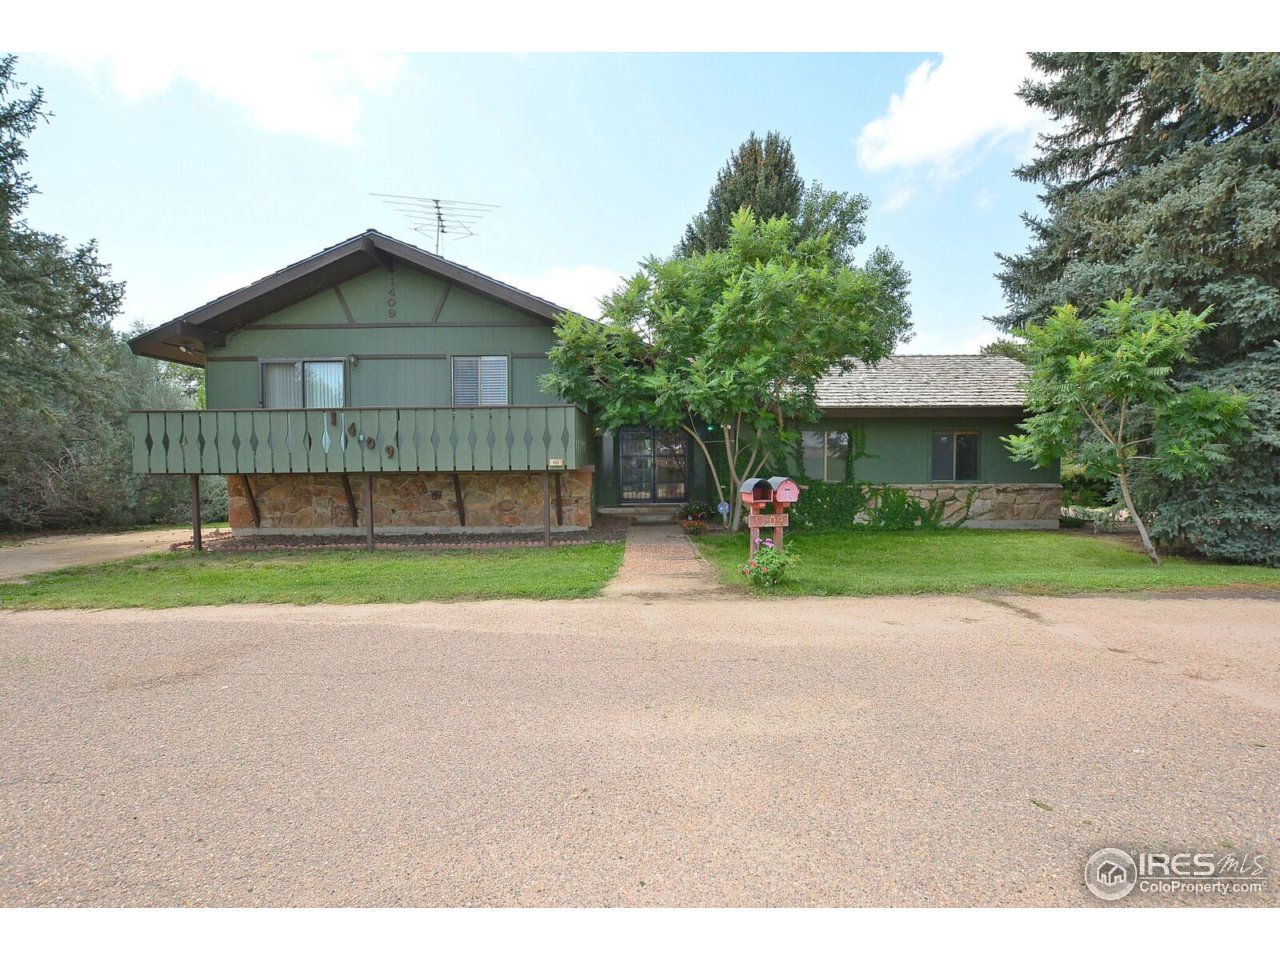 1409 N 1ST AVE, GREELEY, CO 80631